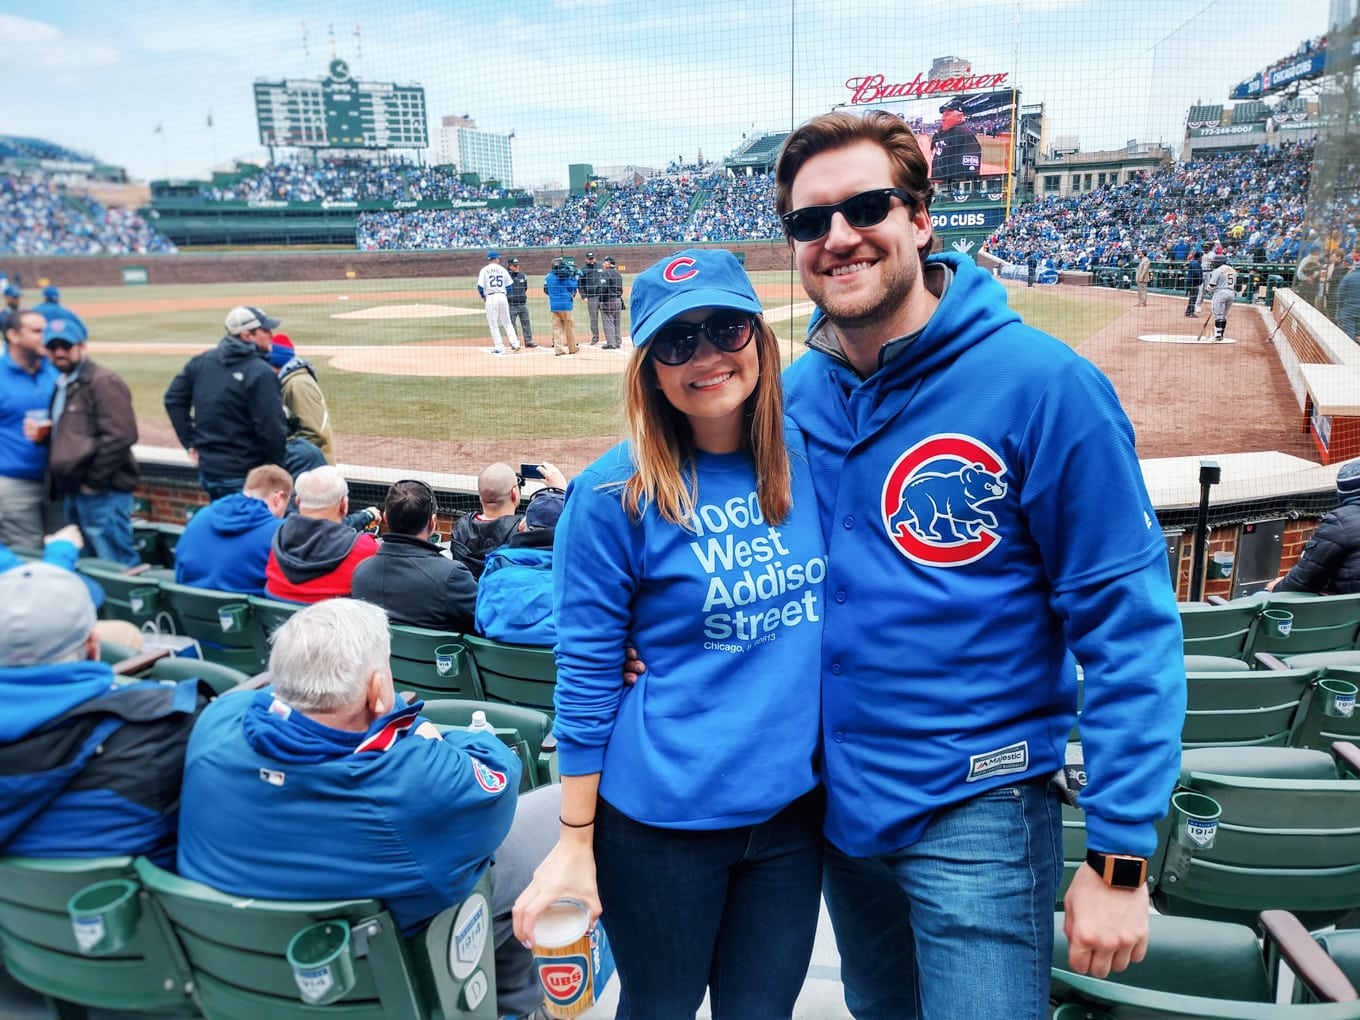 Lake shore lady at Cubs Home Opener with the Moto z2Force!